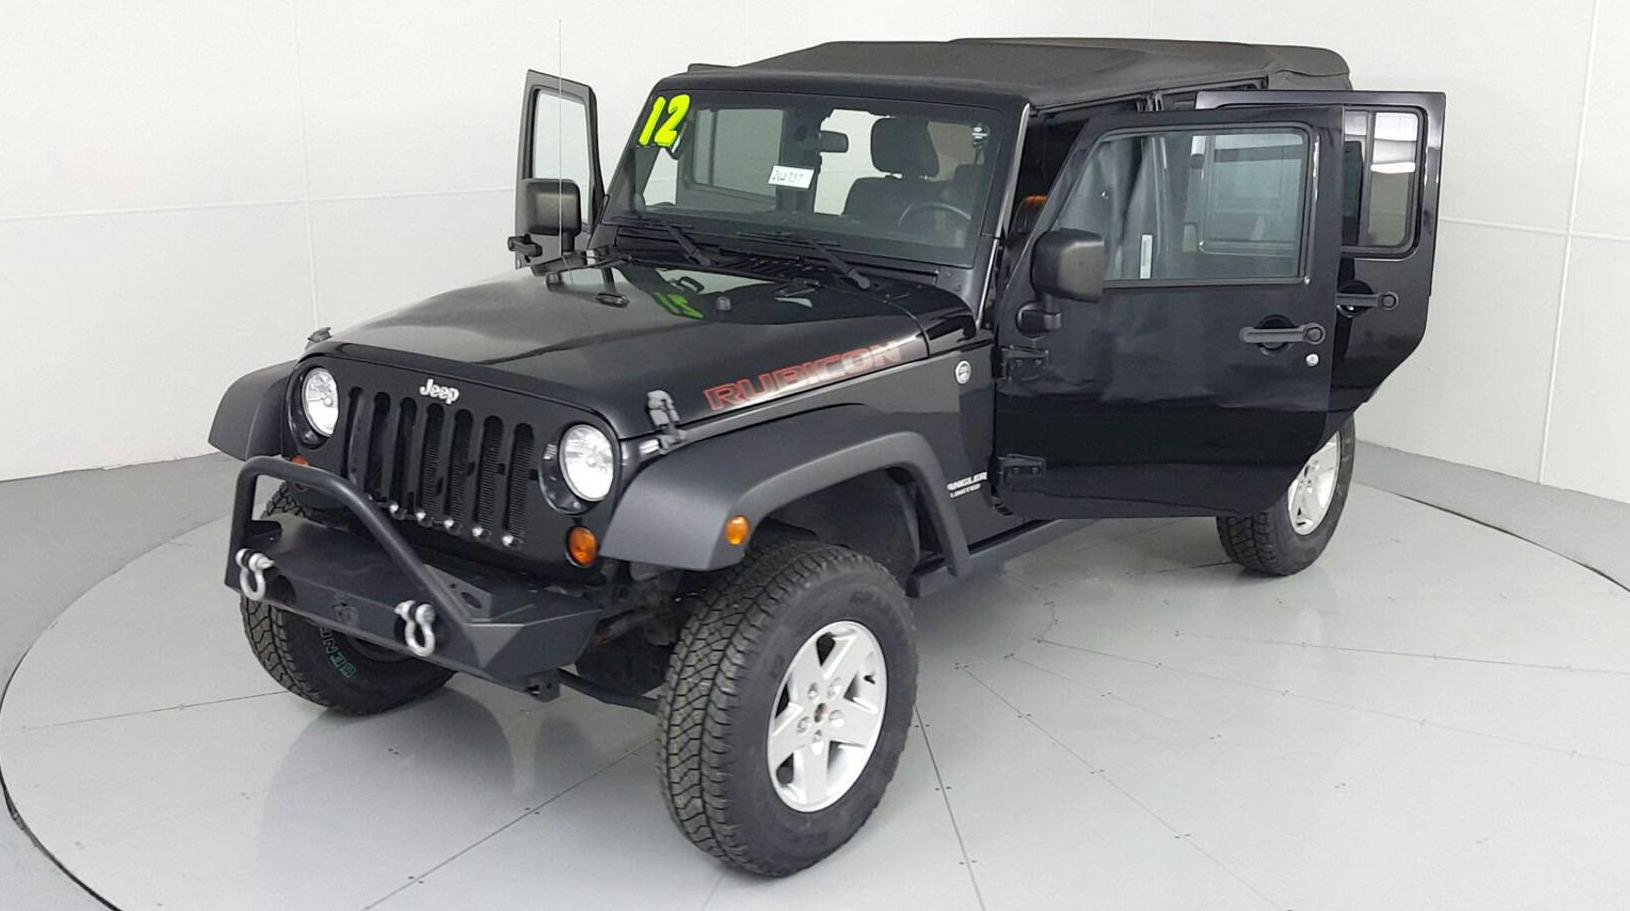 Pre-Owned 2012 JEEP WRANGLER UNLIMITED Unlimited Rubicon